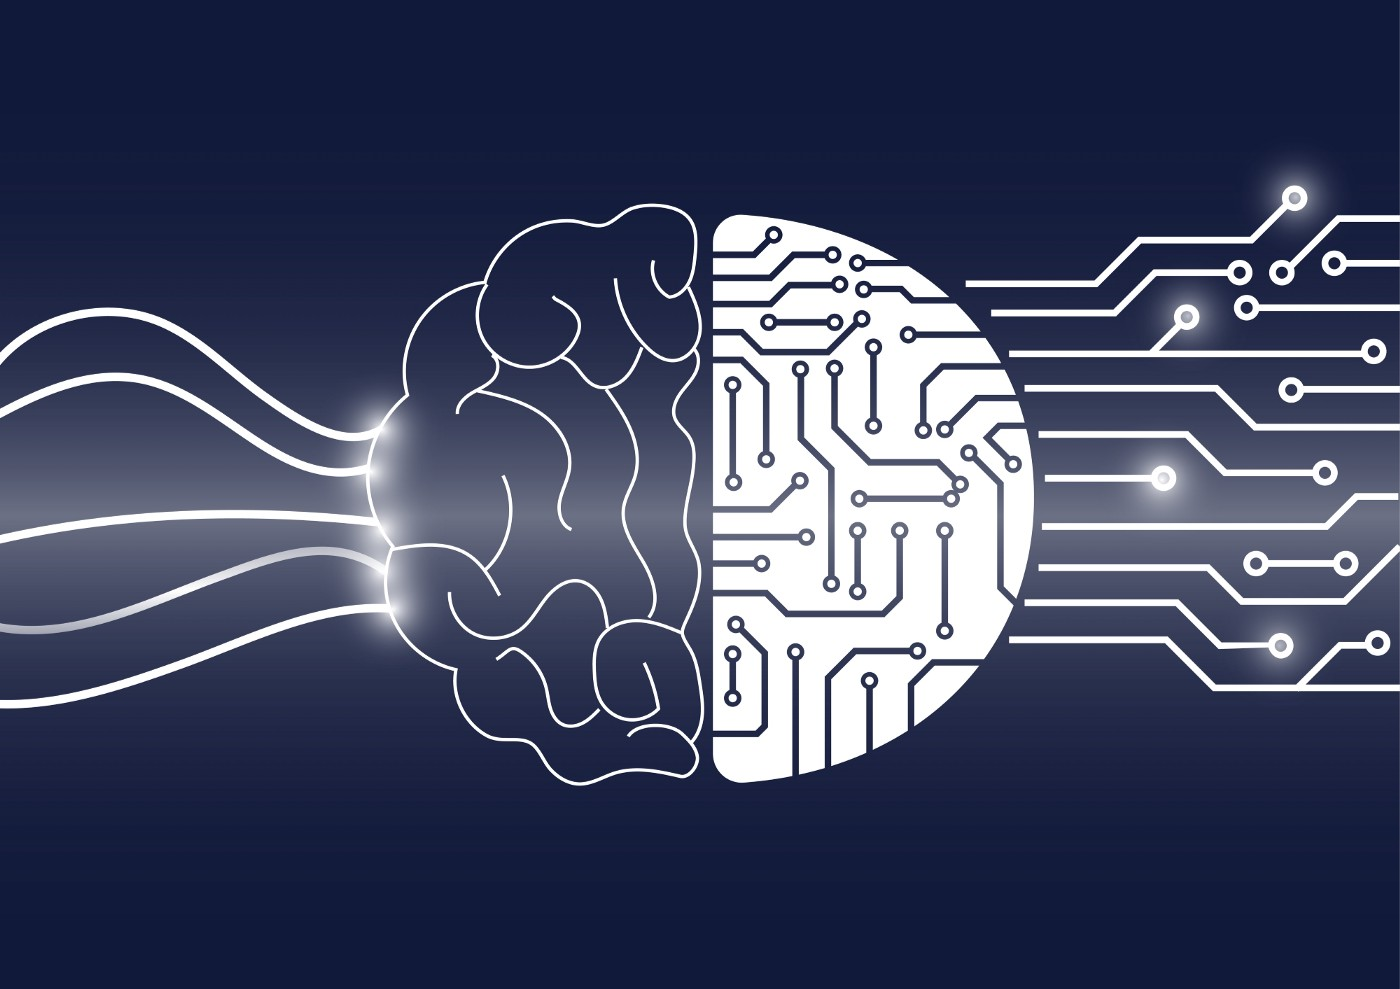 A drawing of a brain that is being converted into a circuit board